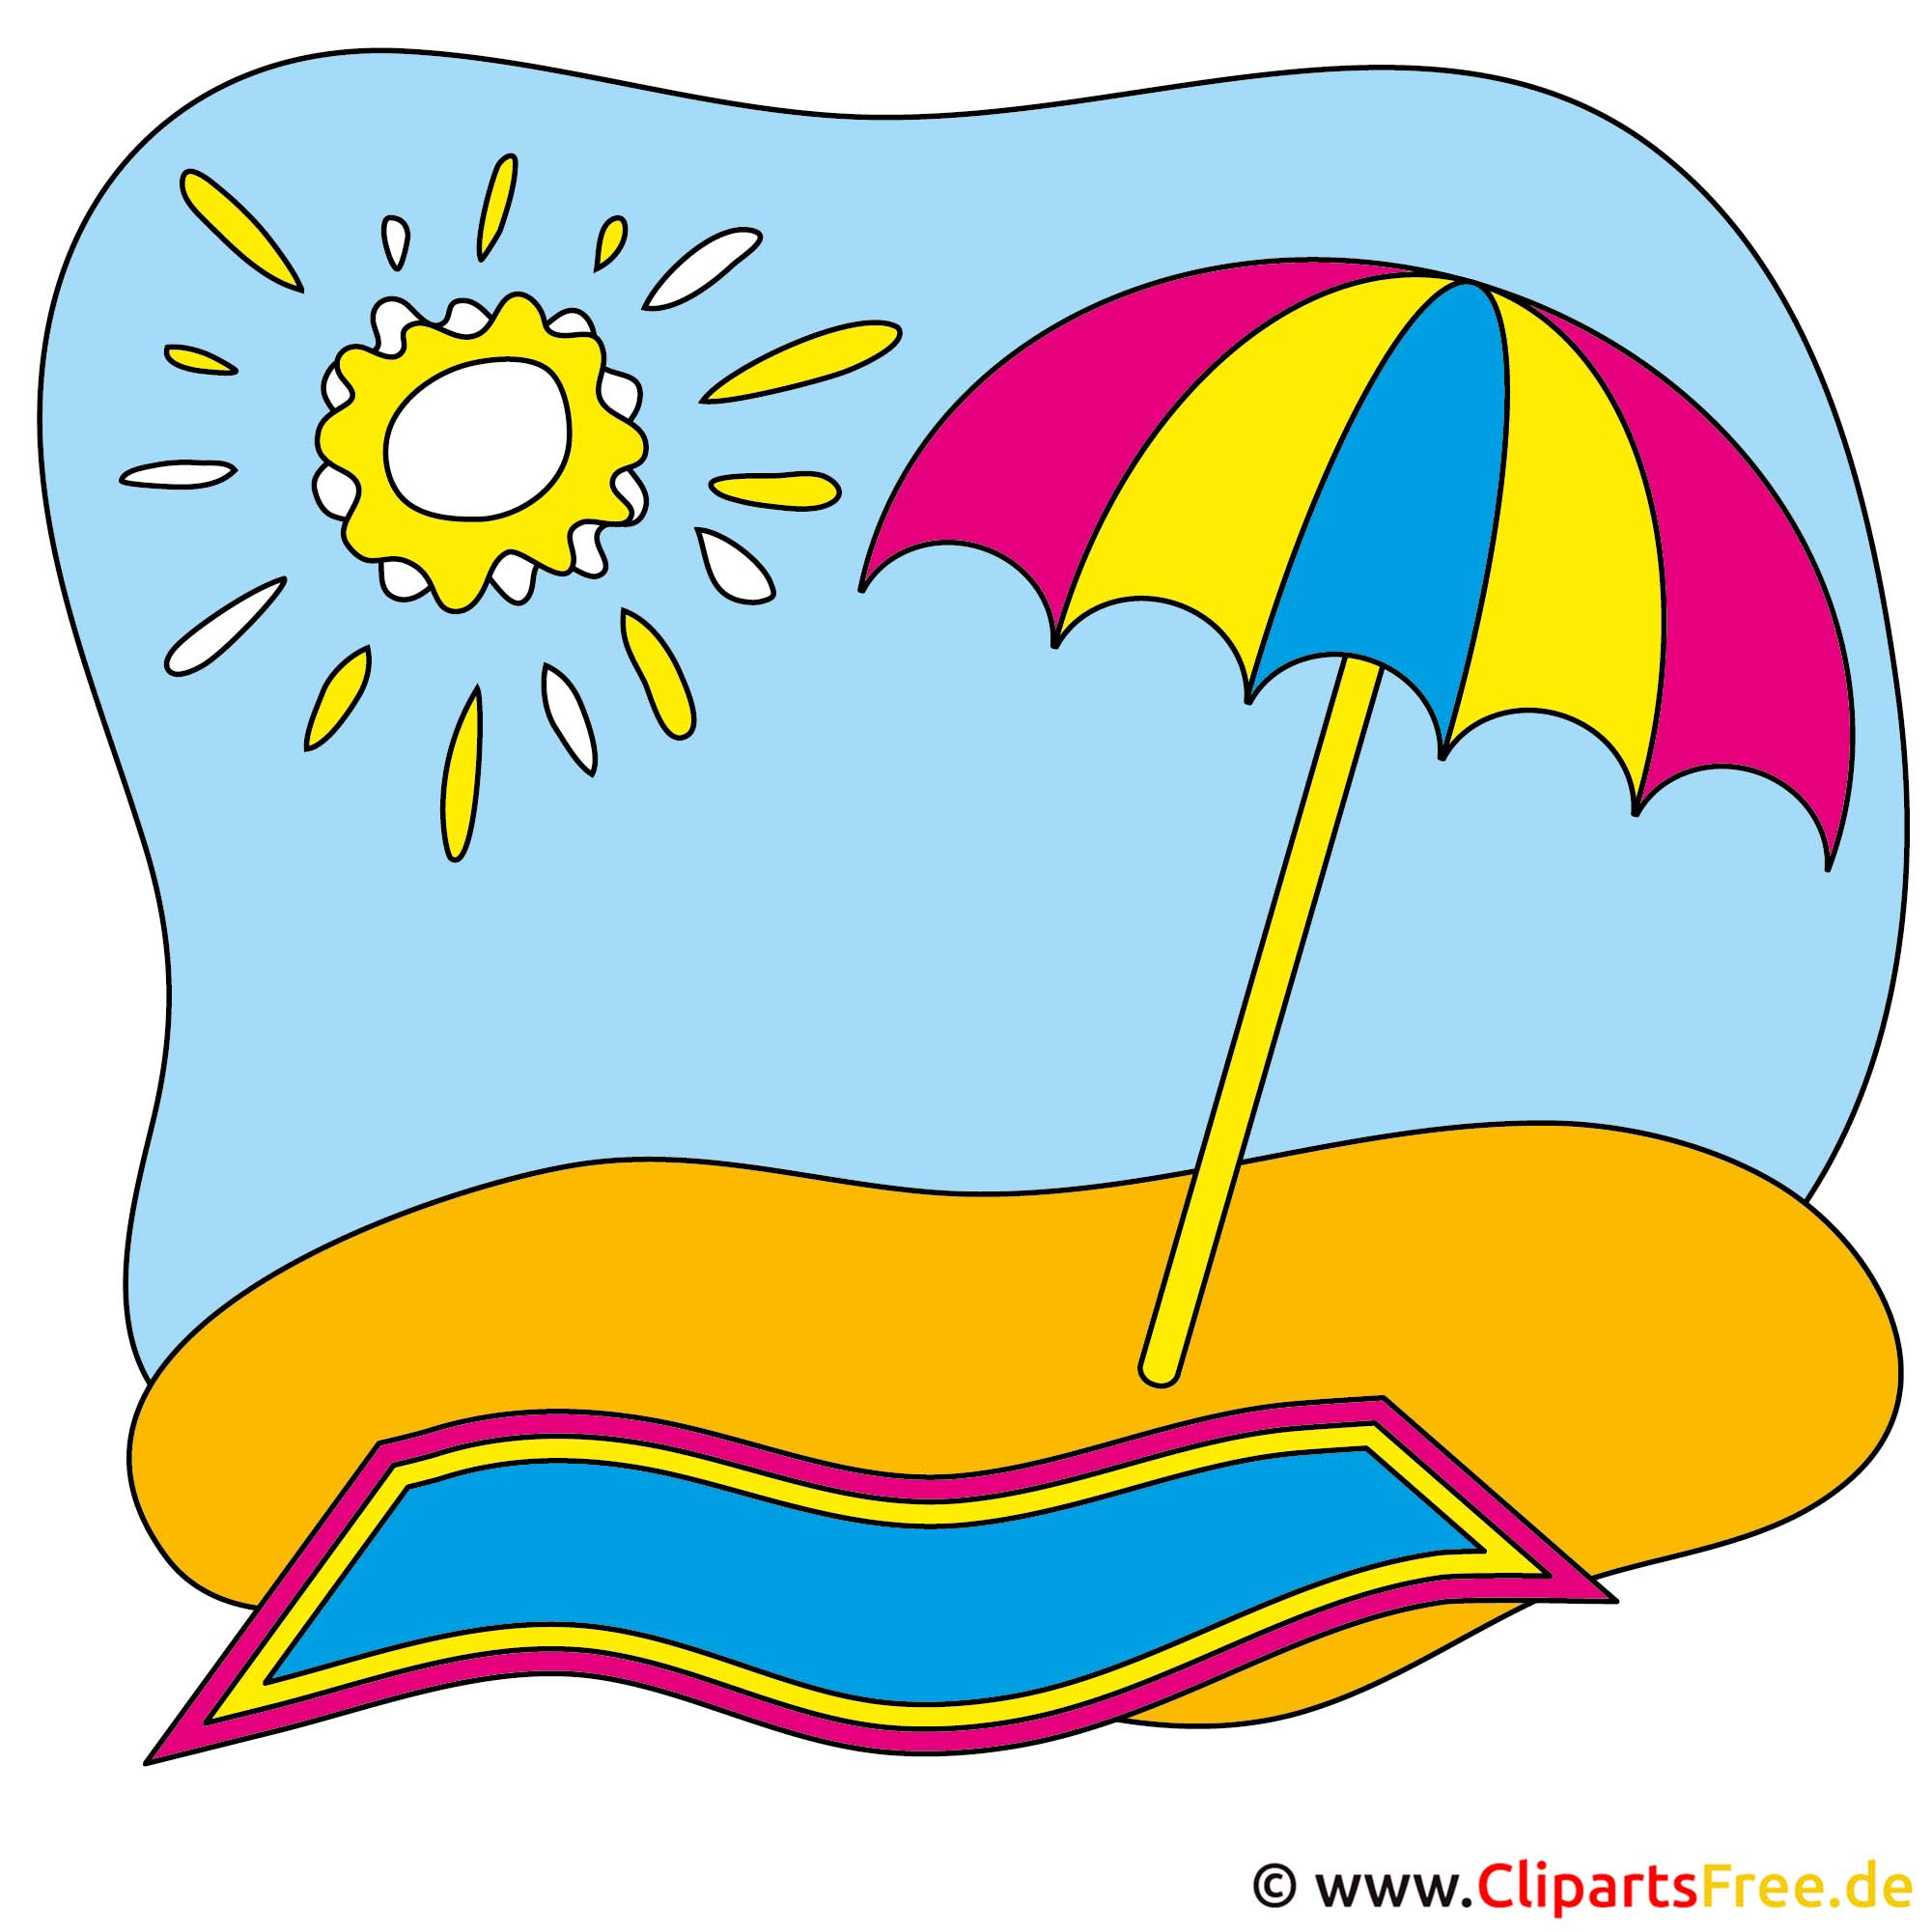 clipart ferien urlaub - photo #6